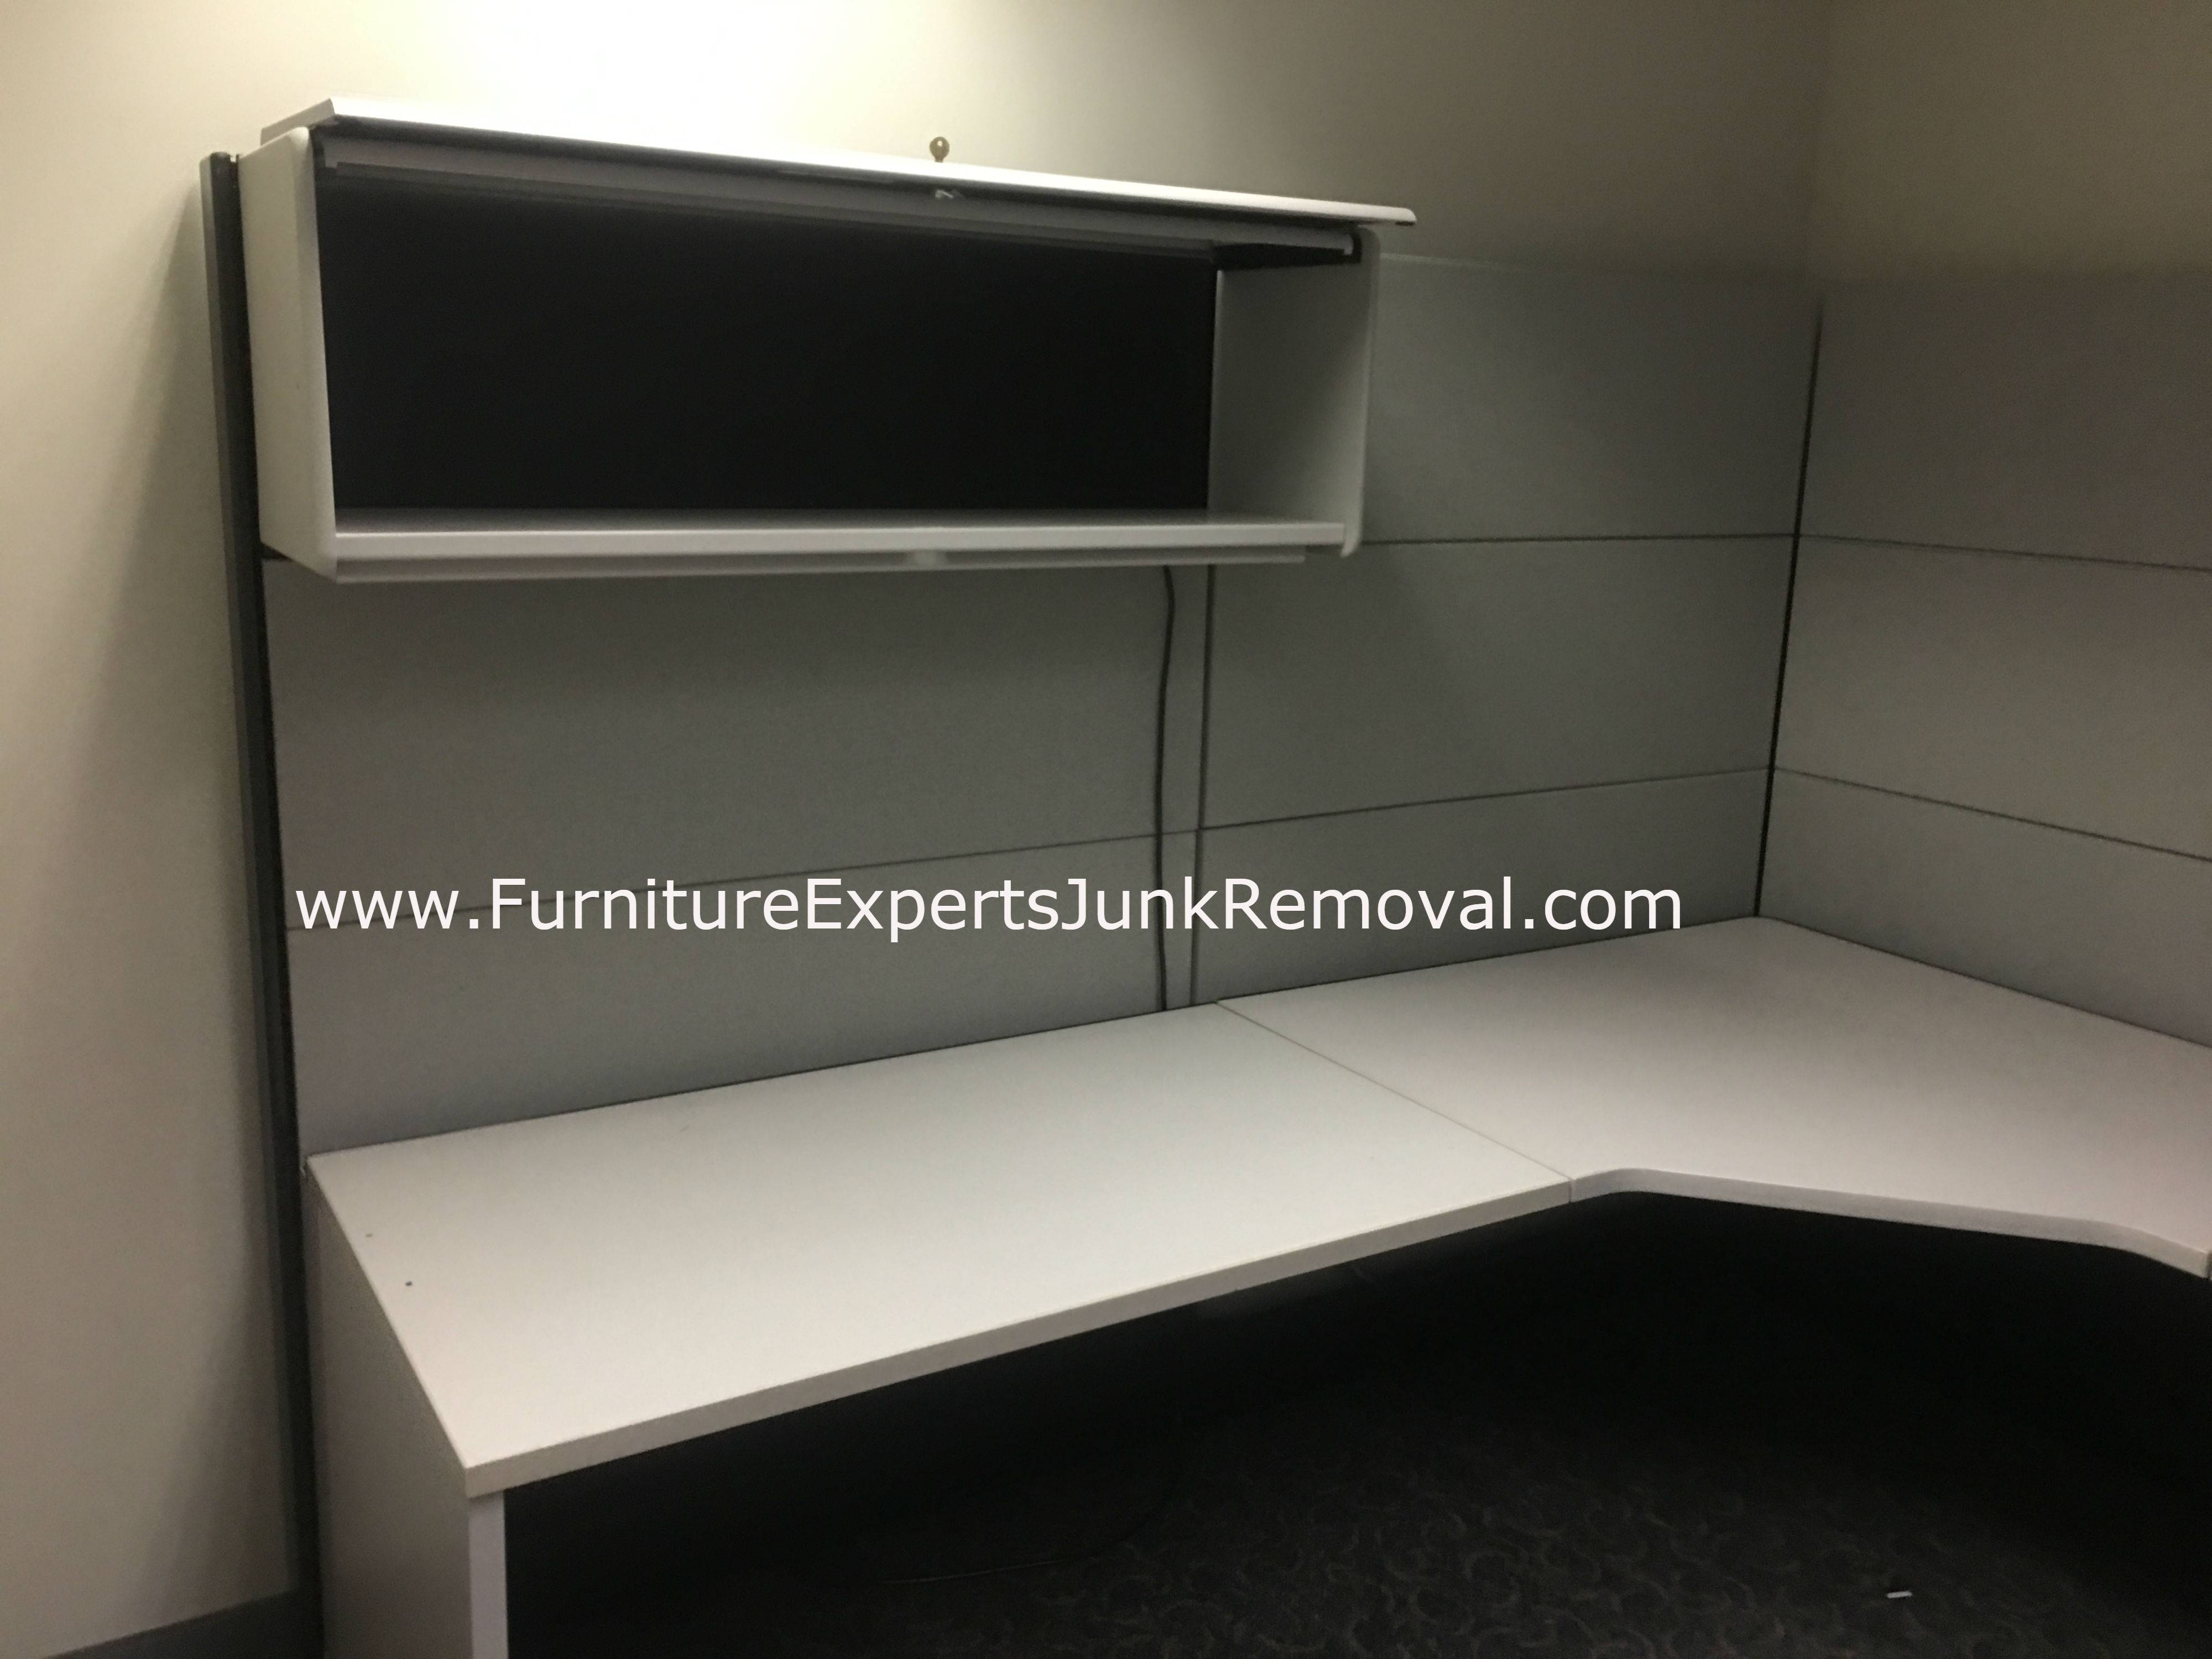 Junk office cubicle removal in bethesda MD